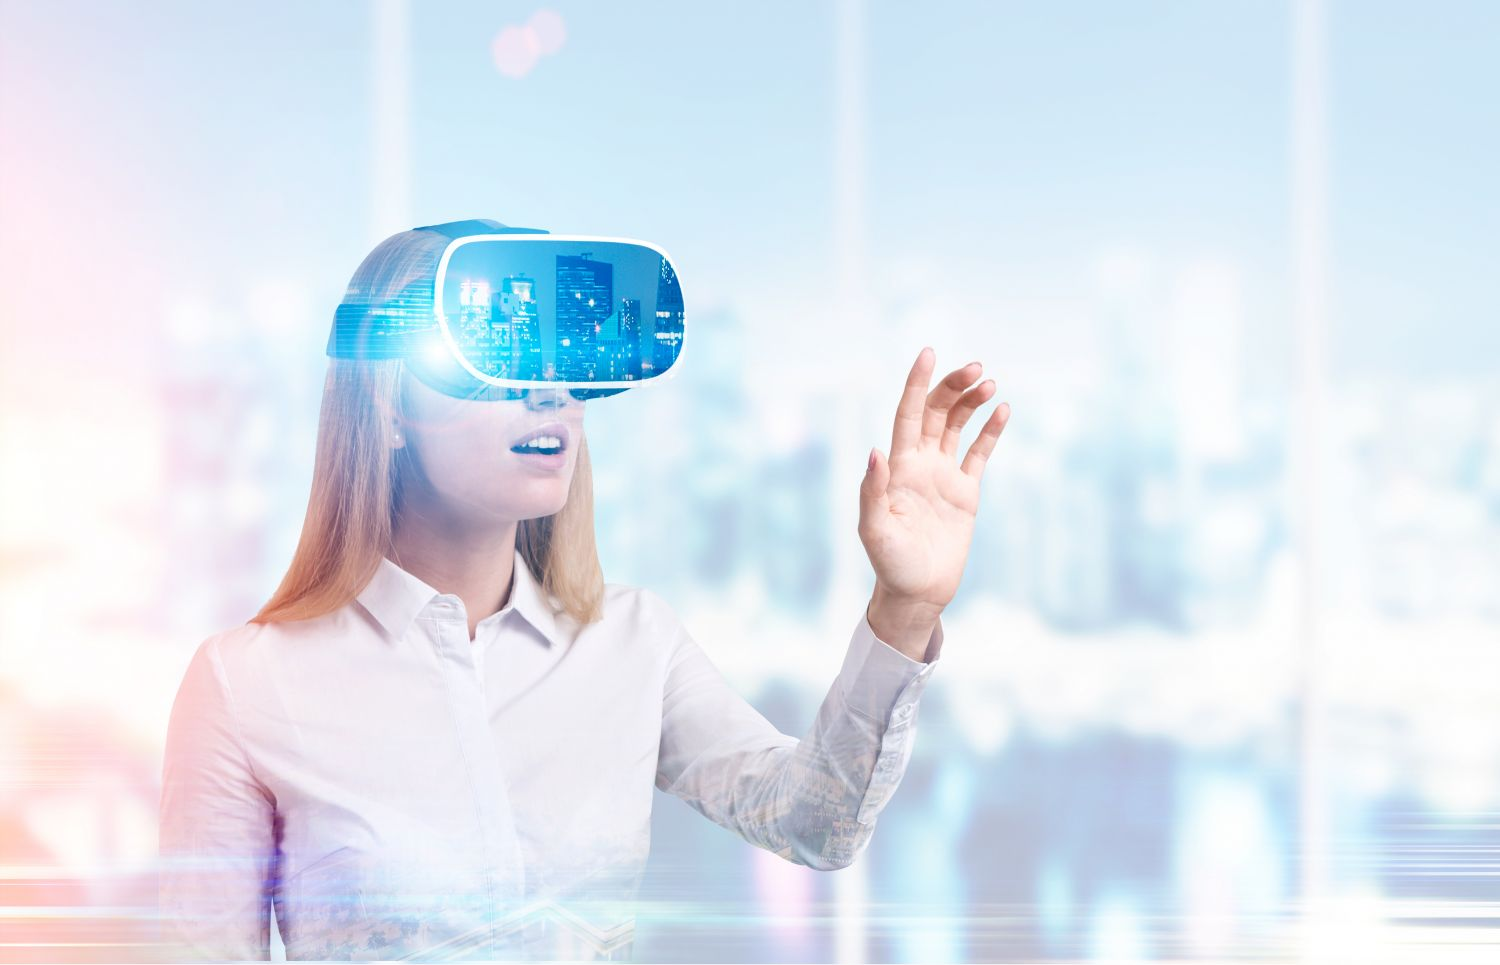 Business-Frau mit VR-Brille; Thema: Holografie